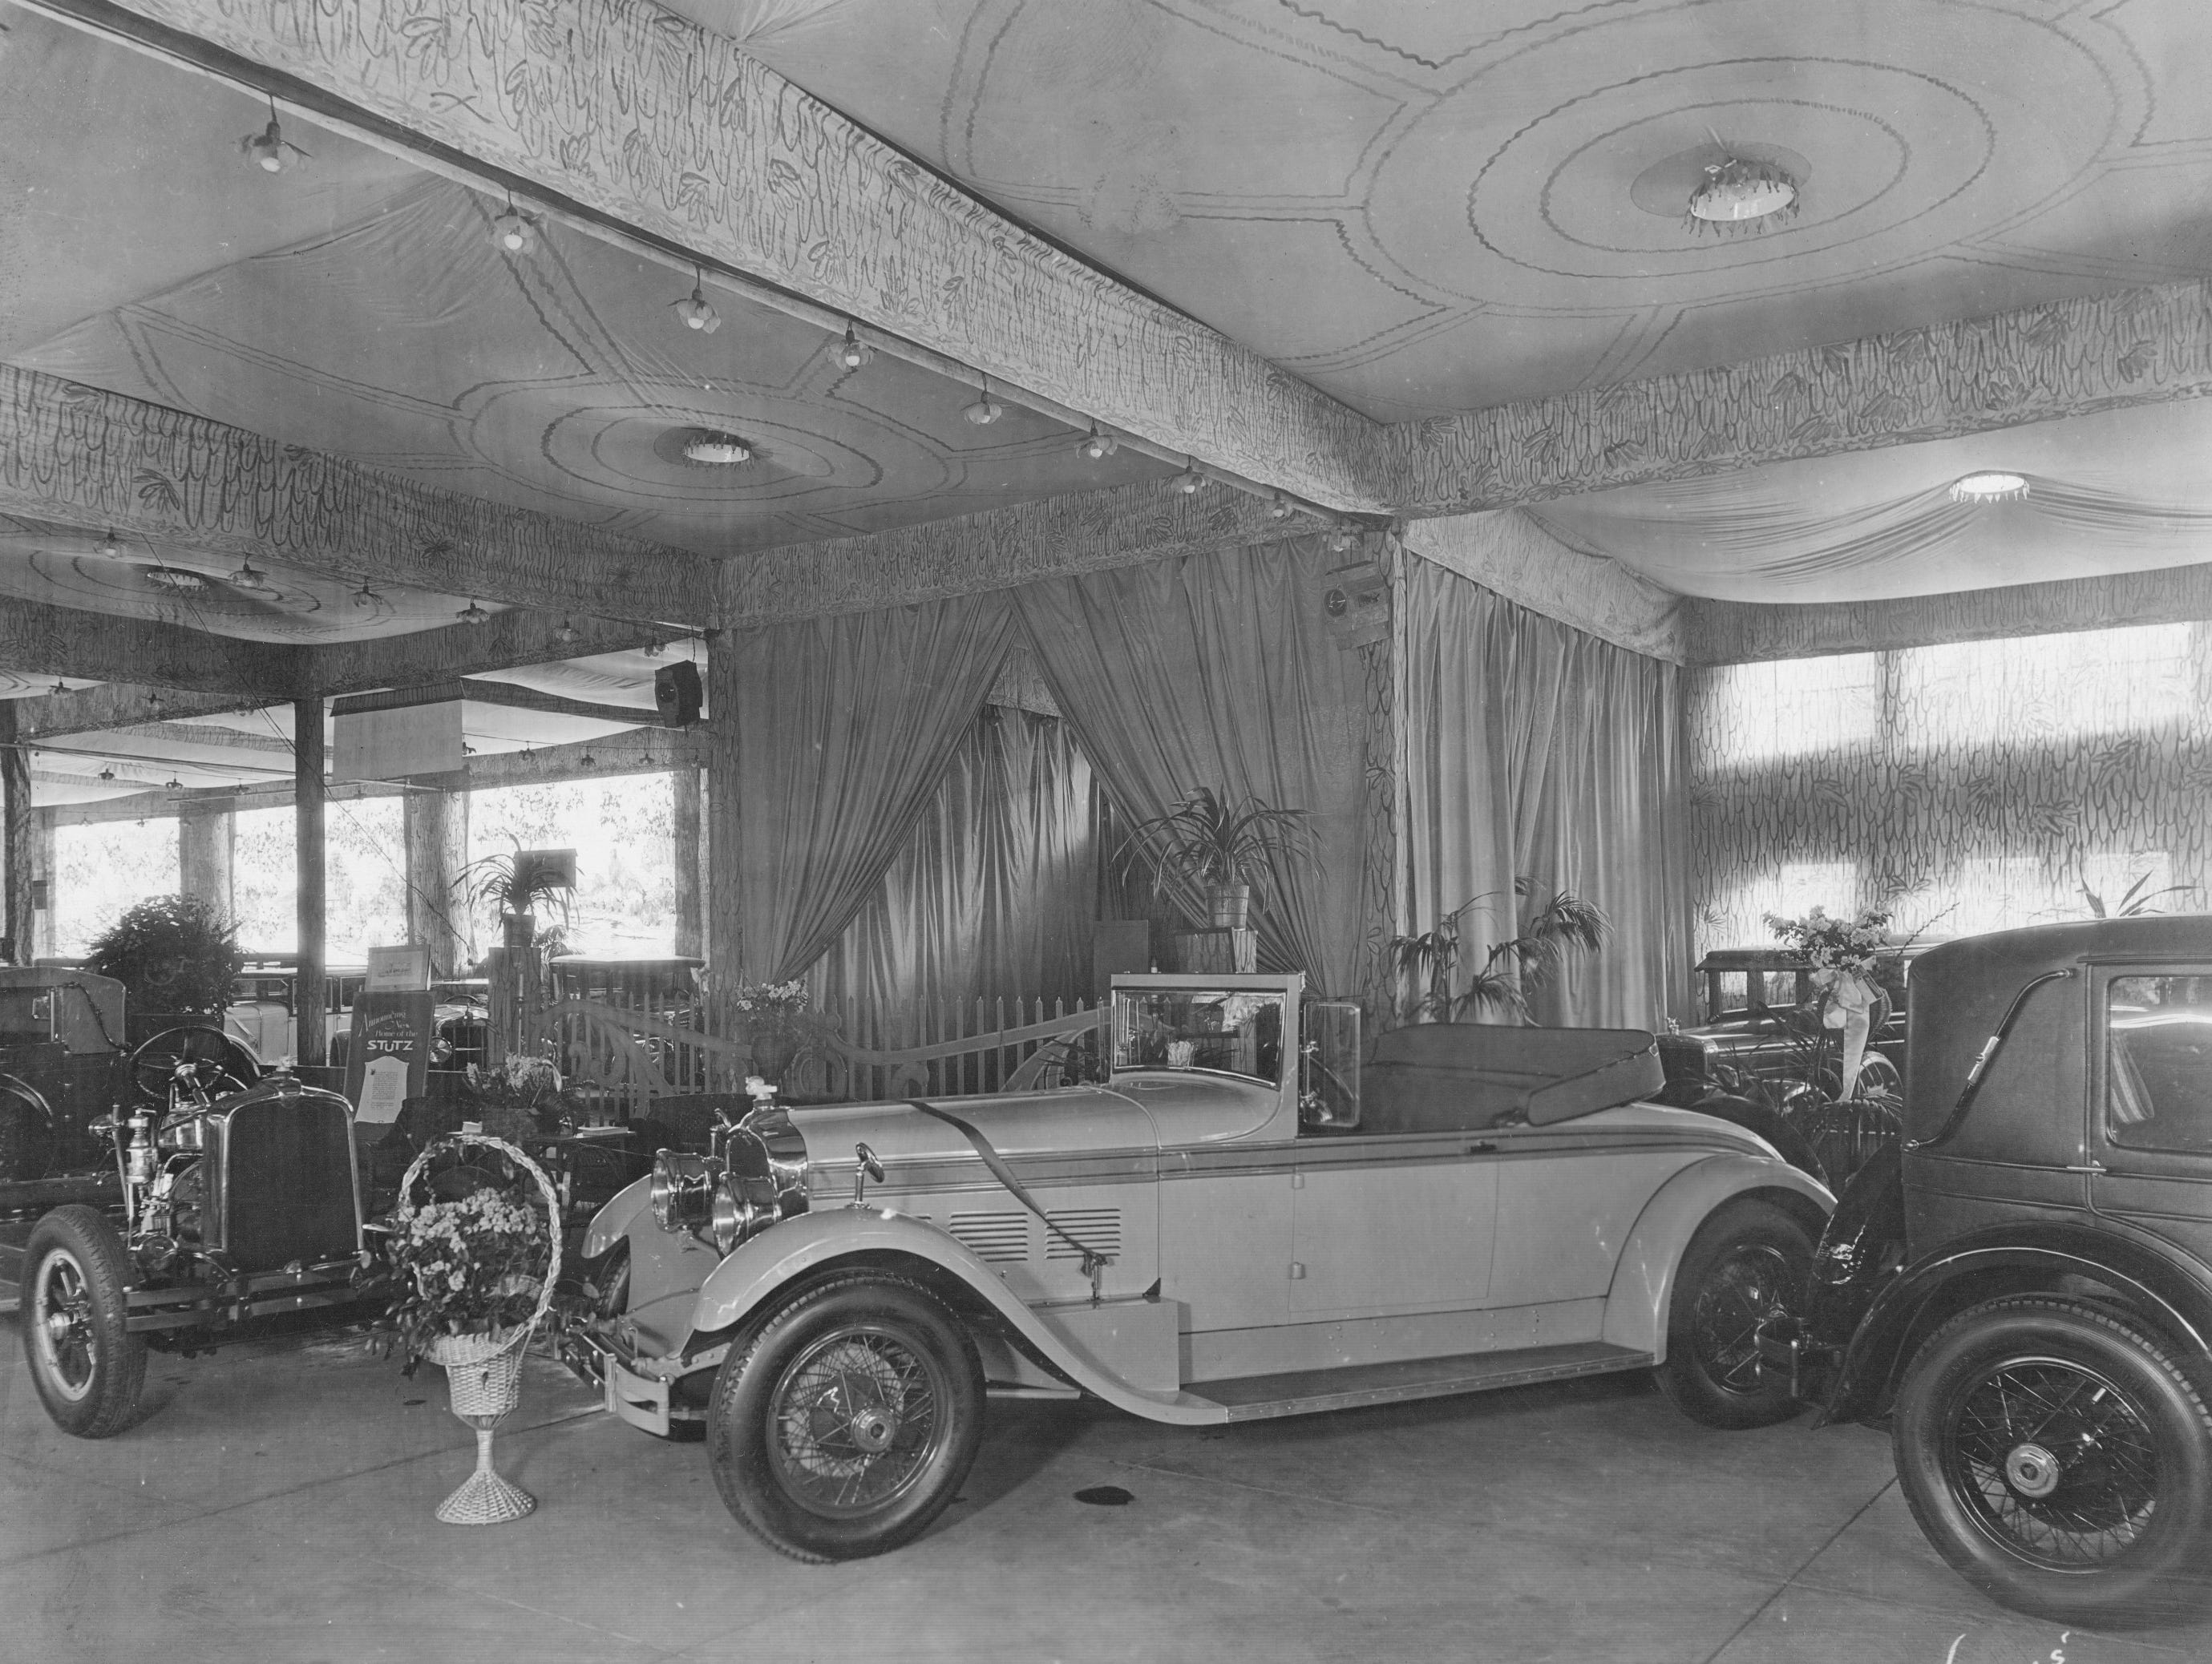 View of the Stutz exhibit at the Indianapolis Auto Show February 14-19, 1927.